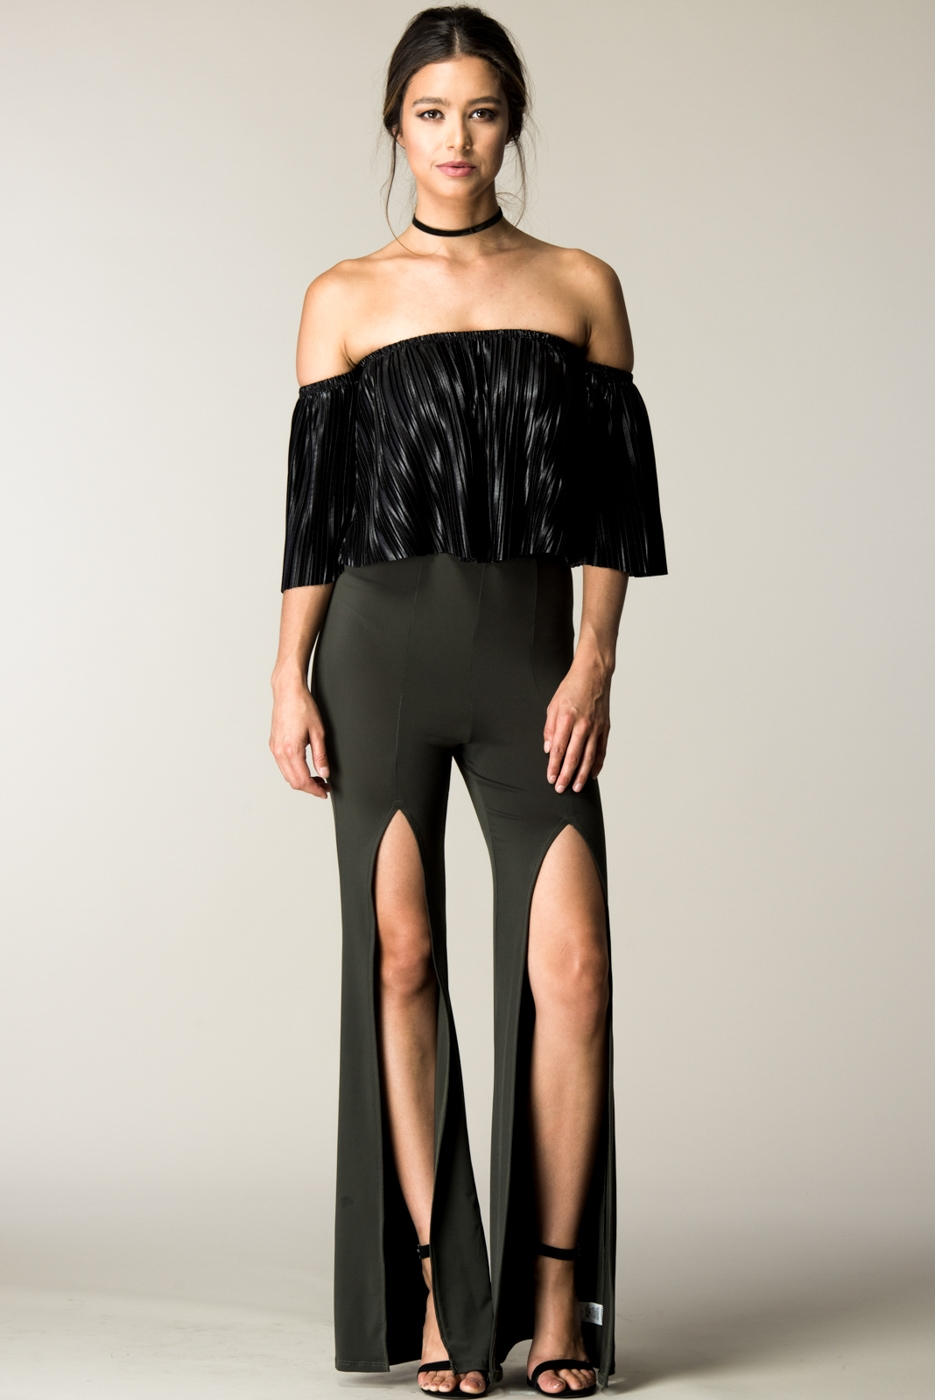 FRONT SLIT DETAIL PANTS - orangeshine.com